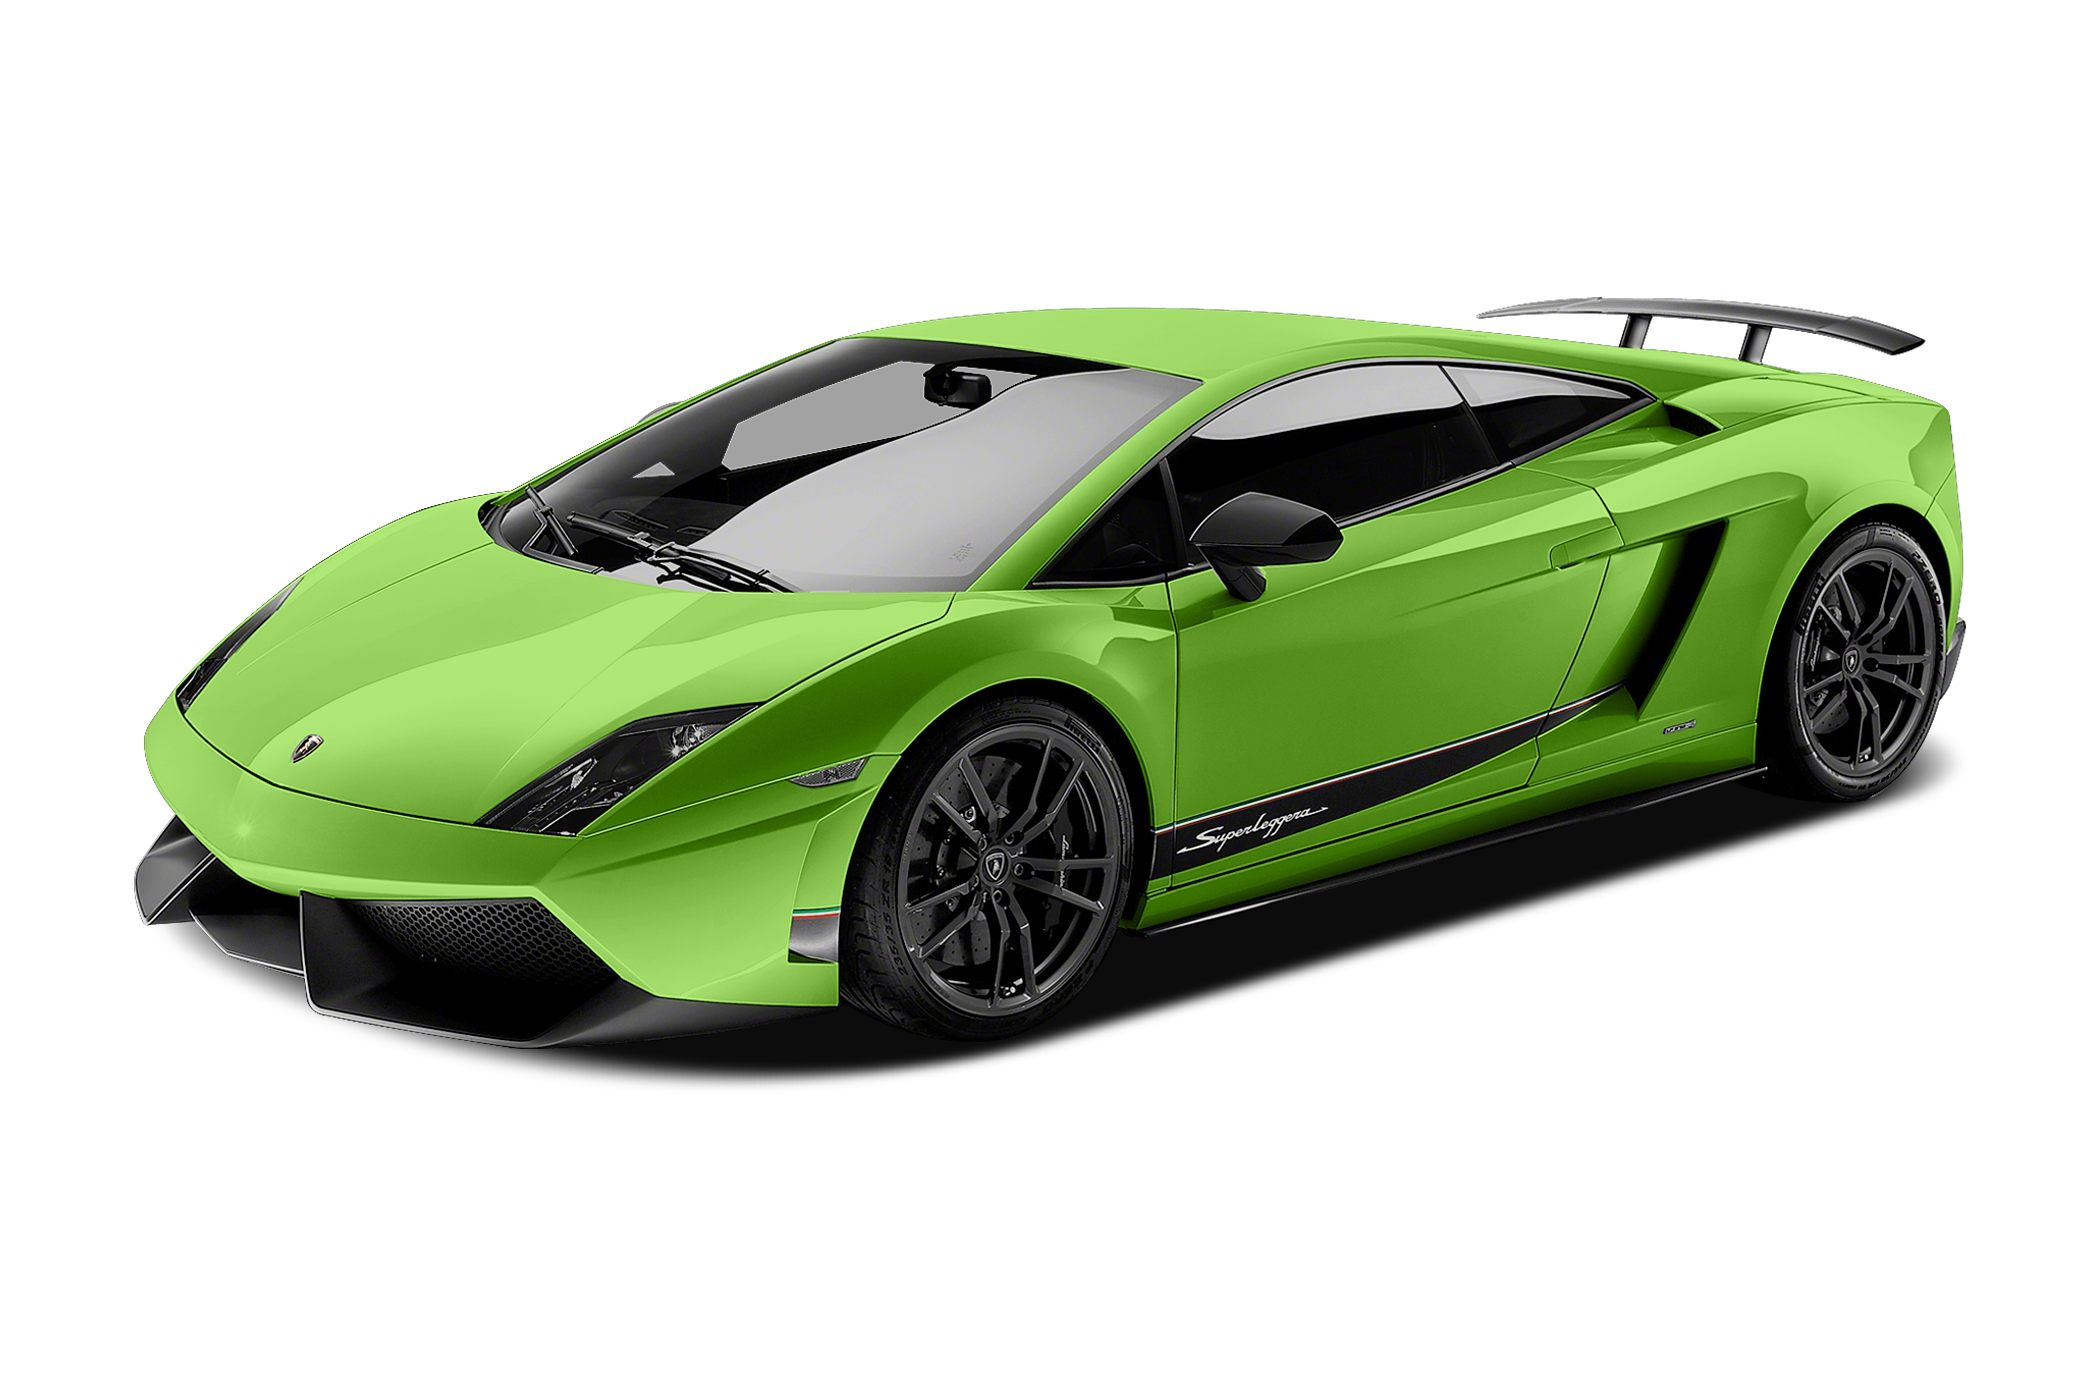 2012 Lamborghini Gallardo Lp570 4 Superleggera 2dr All Wheel Drive